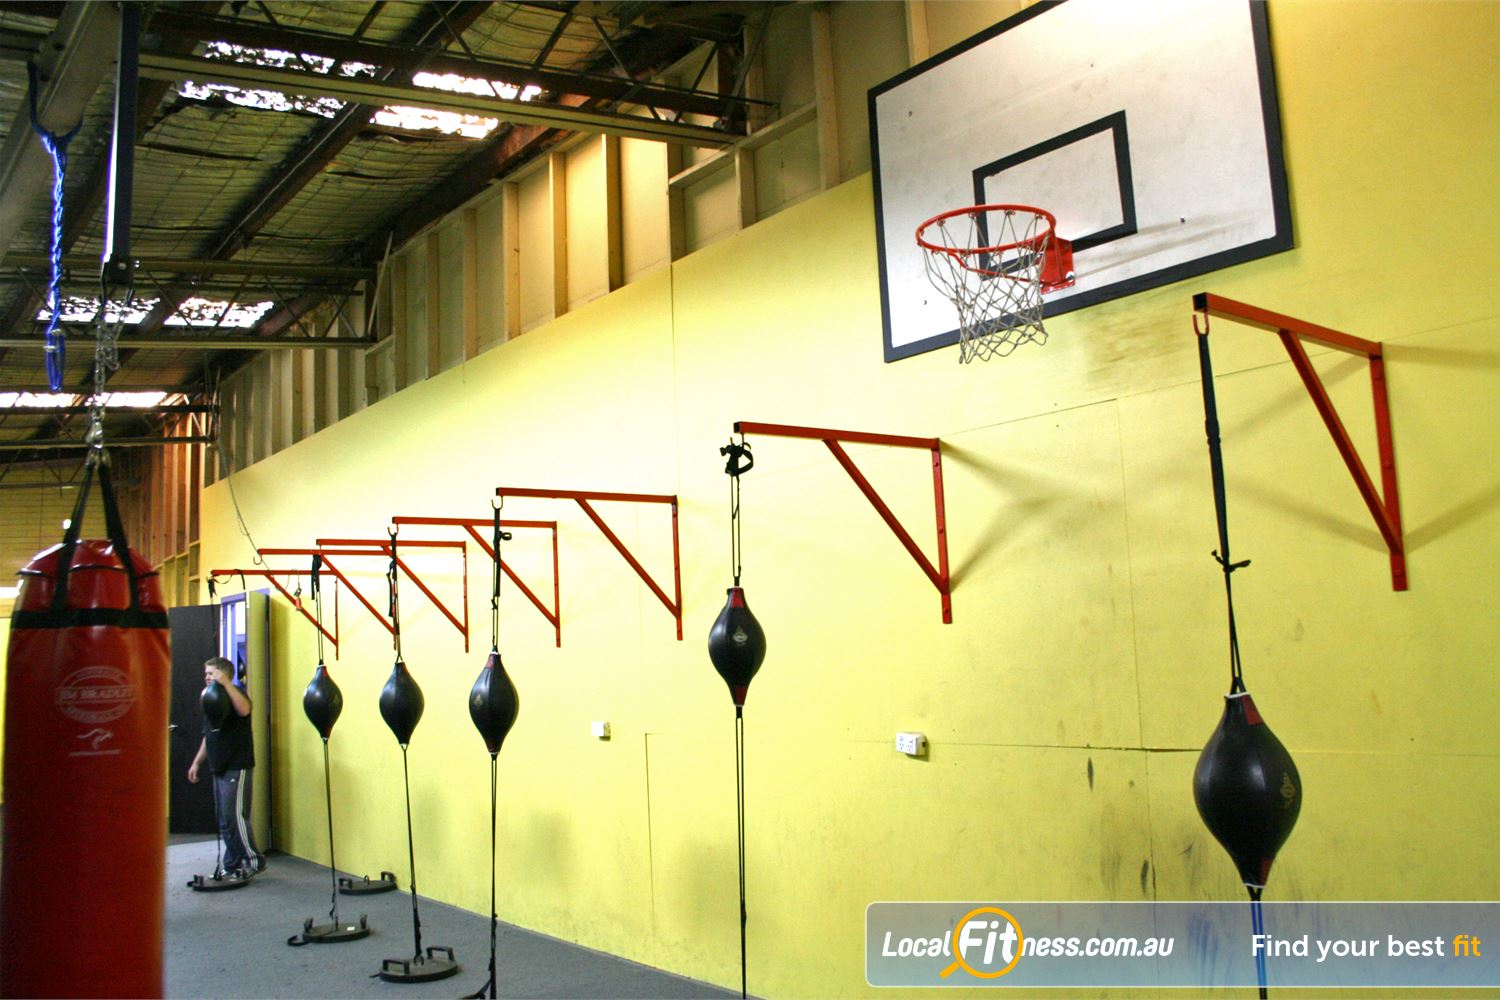 FITafex Gymnasium Essendon Multiple floor to ceiling balls to improve your co-ordination.